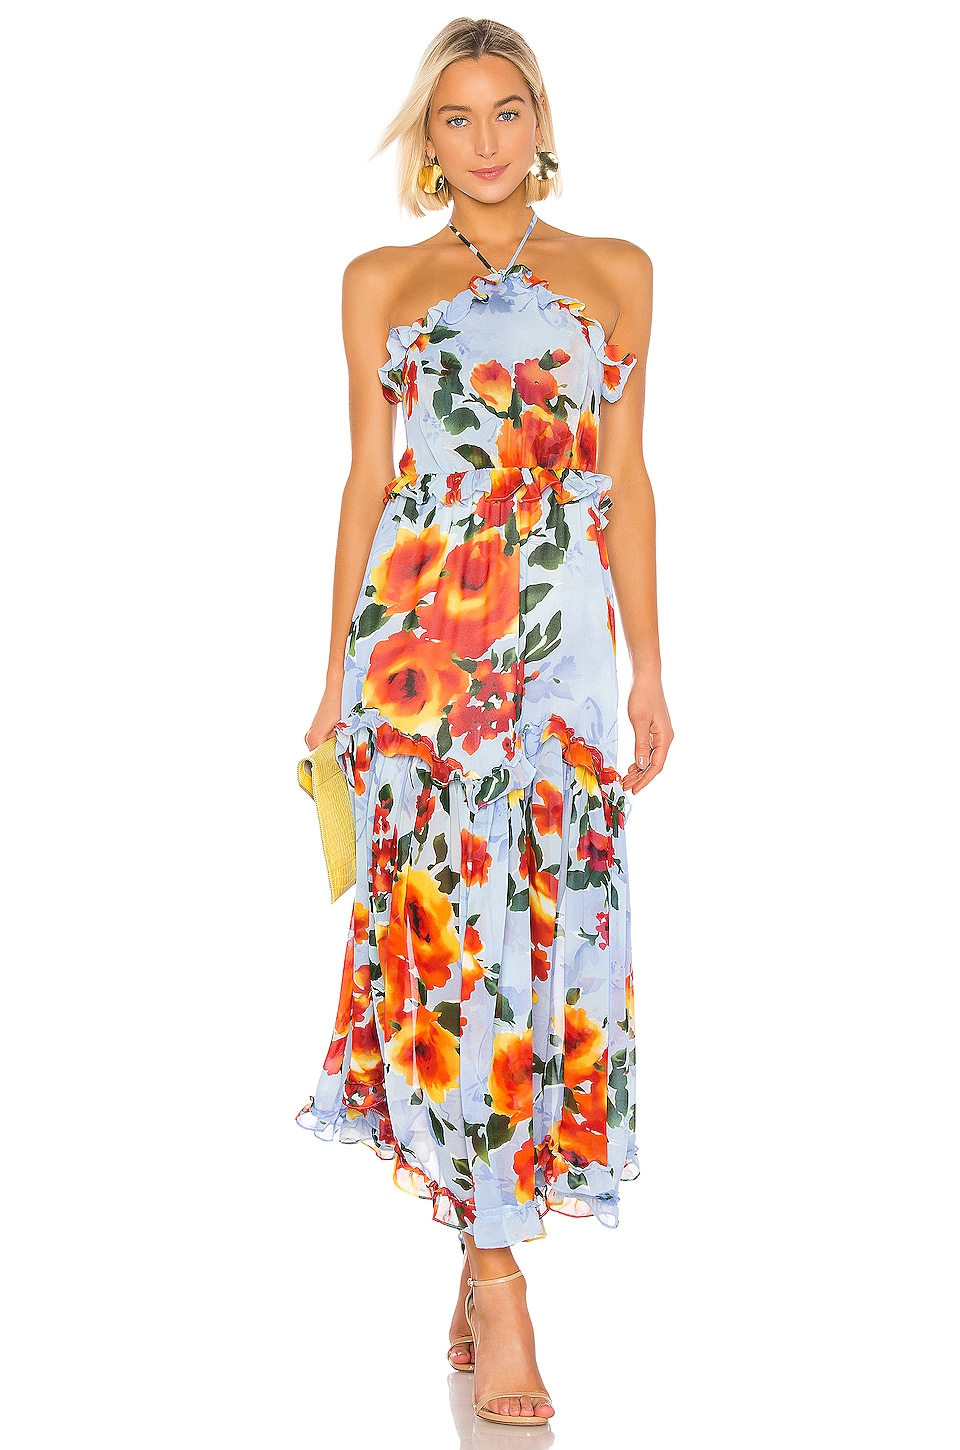 MISA Los Angeles Dallin Dress in Blue Multi Floral